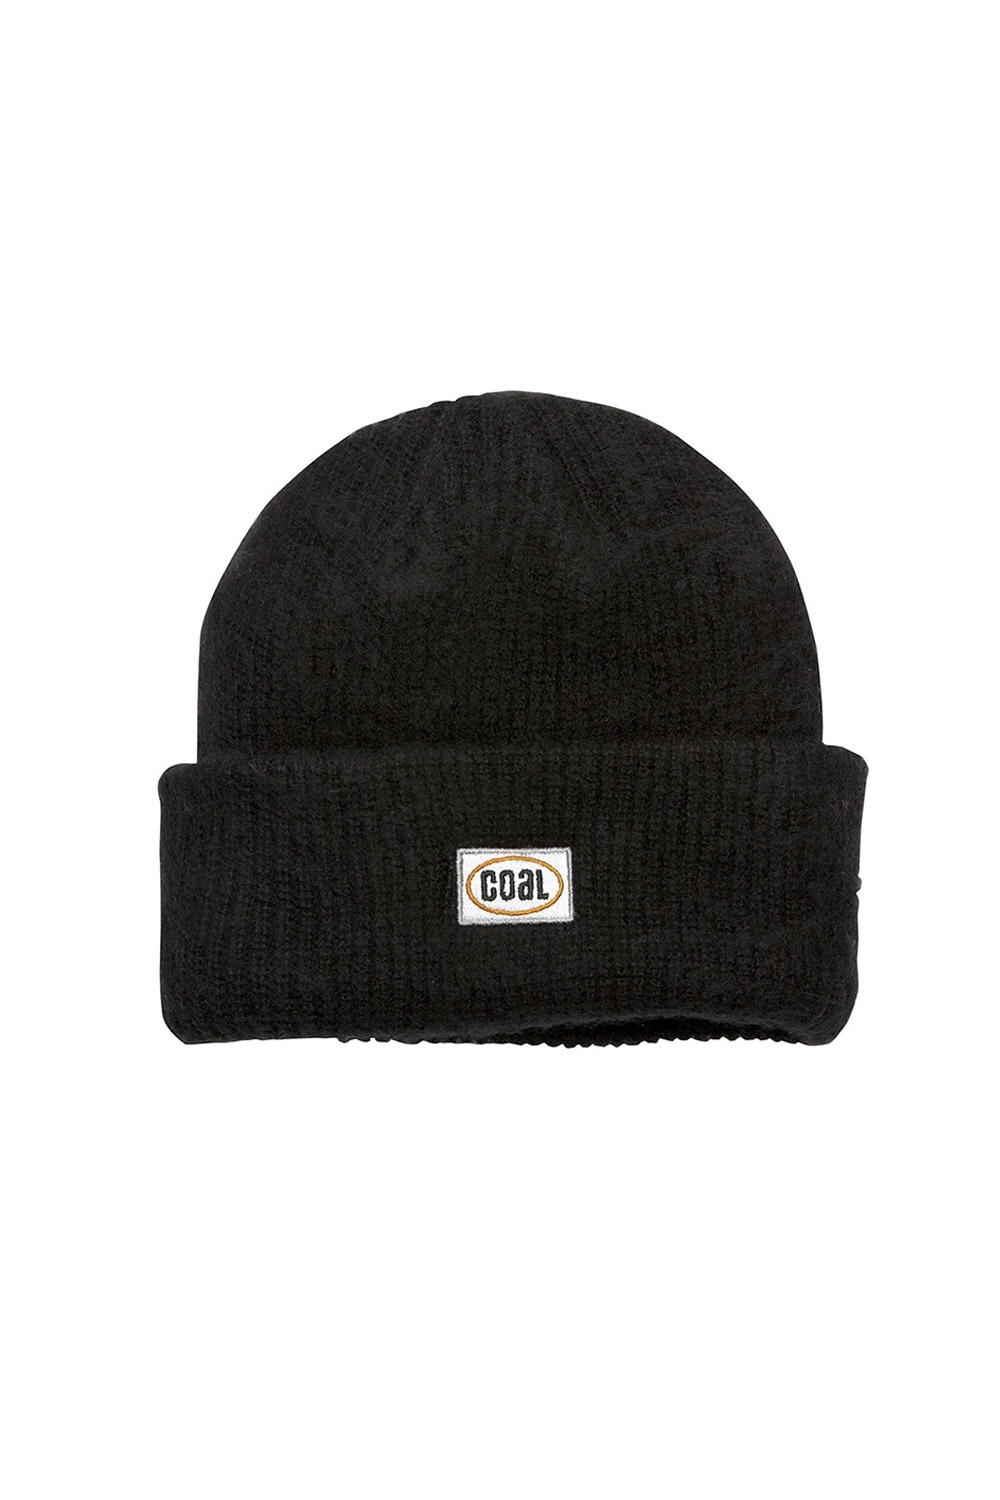 콜 모자 이얼 비니_남녀공용_1920 COAL_THE EARL BEANIE_BLACK_ICA911BK[26]_DICA911BK